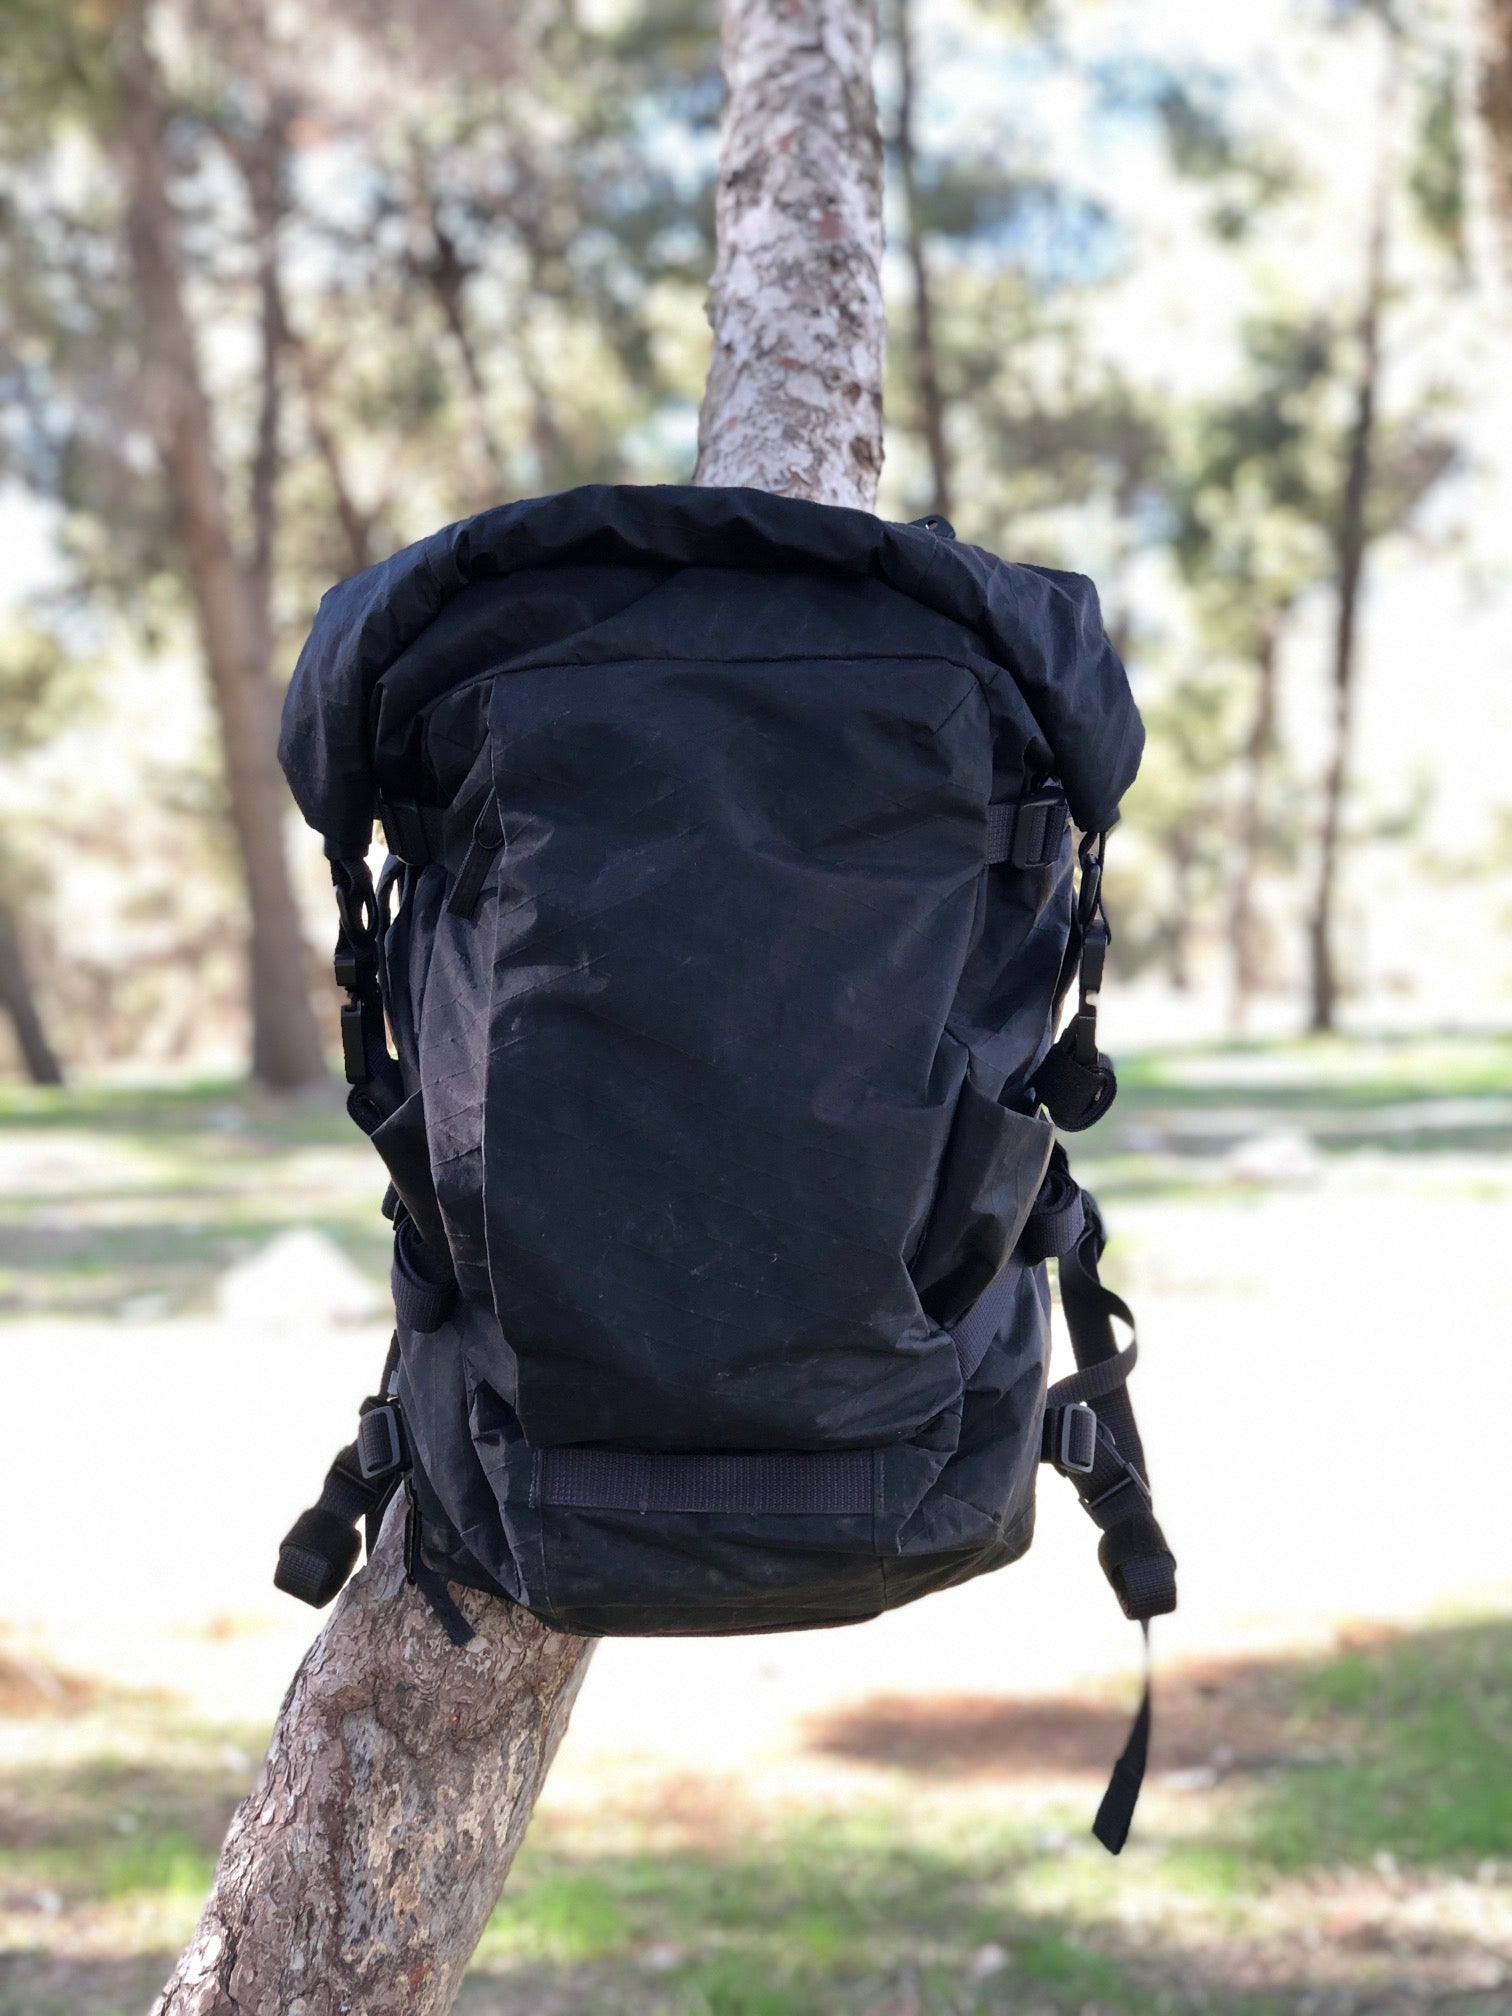 ATD1 Backpack: Cordura® 500d or X-Pac® VX21?